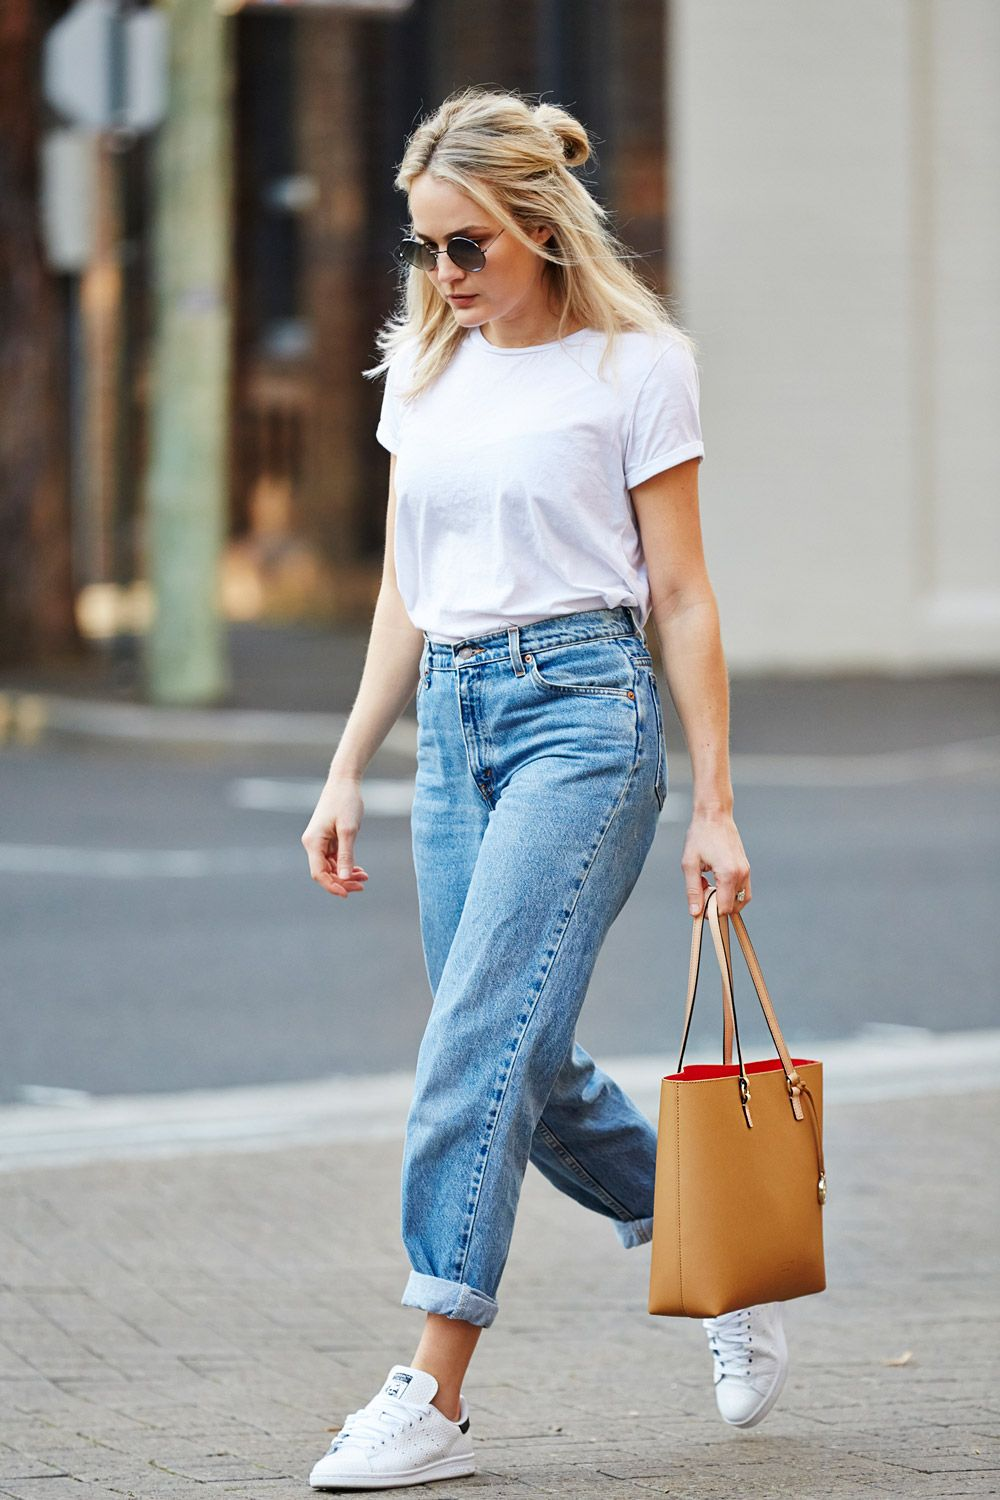 b460552ef8 How To Wear High Waisted Jeans Pinterest